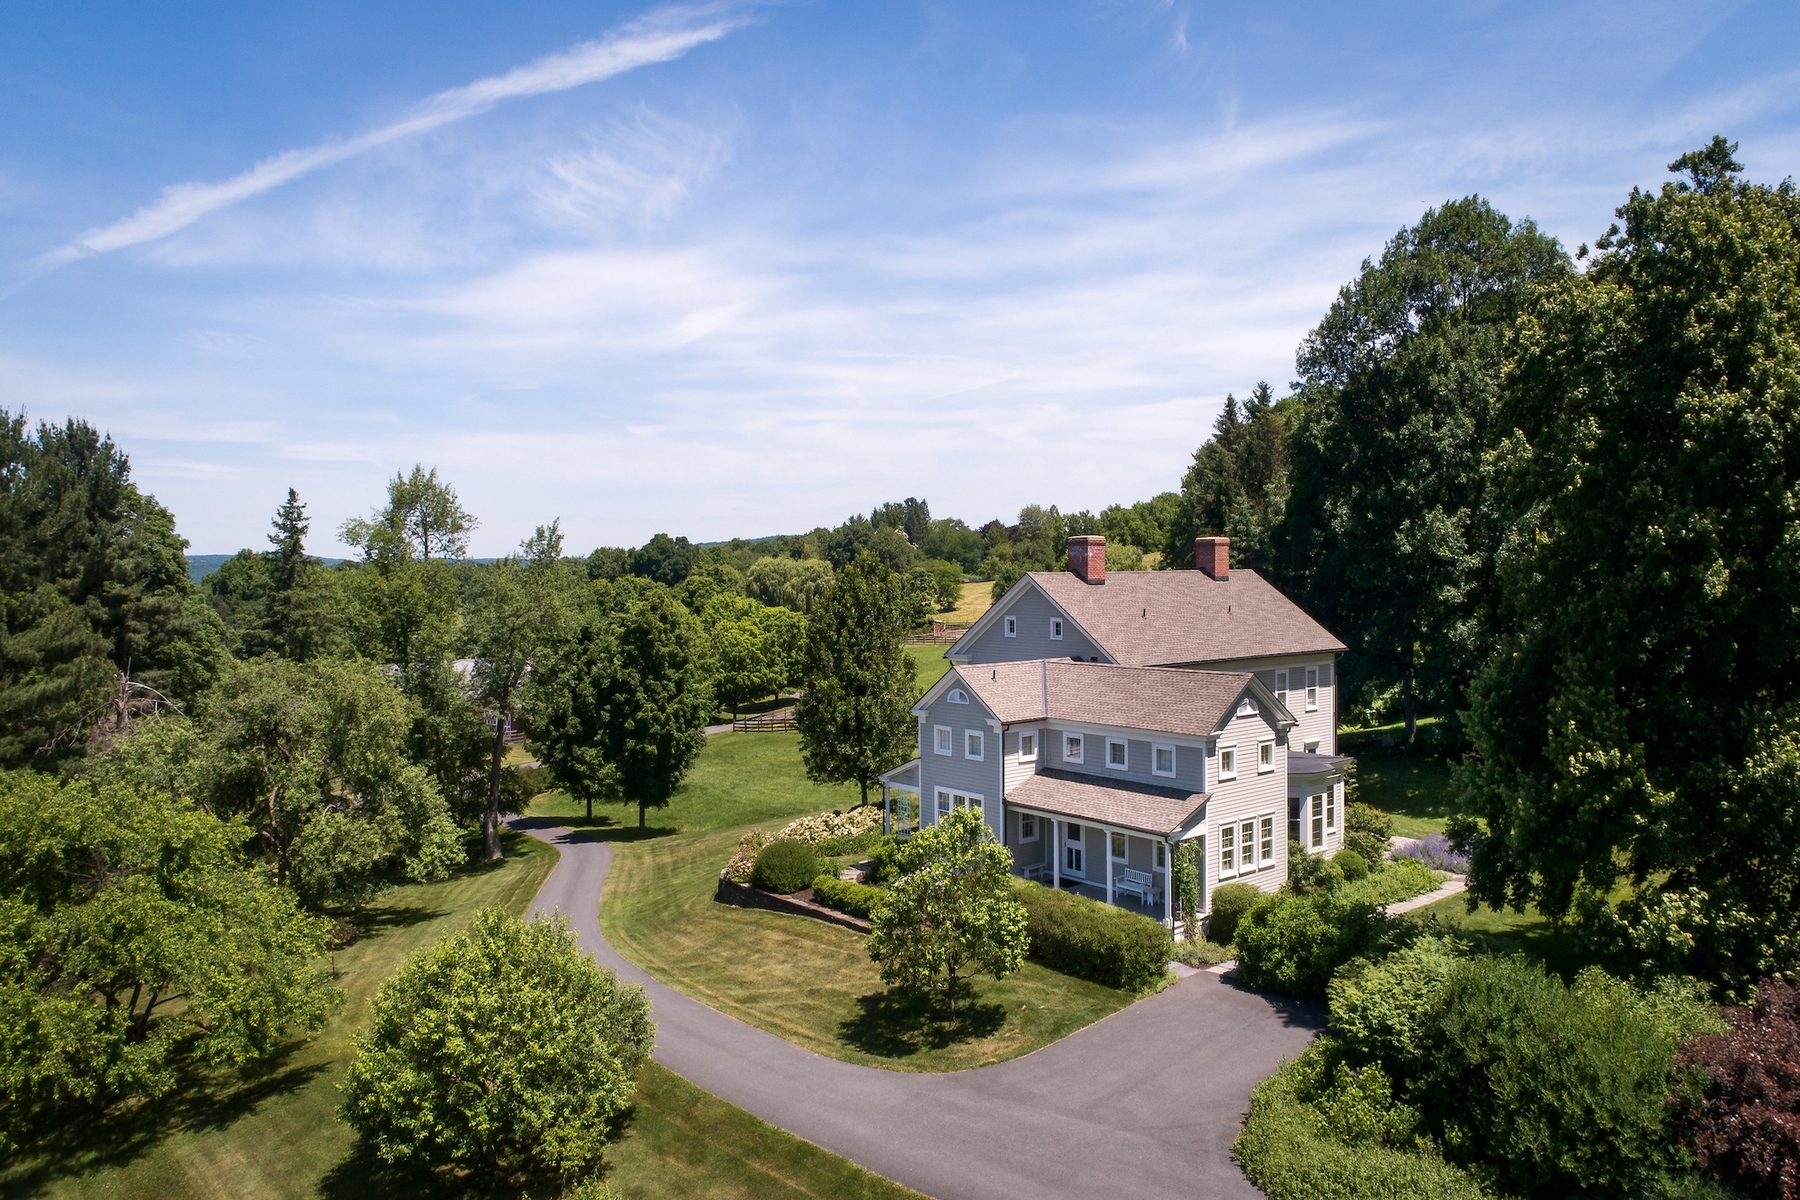 Casa Unifamiliar por un Venta en Spruce Ridge Farm 434 County Route 13 Old Chatham, Nueva York 12136 Estados Unidos